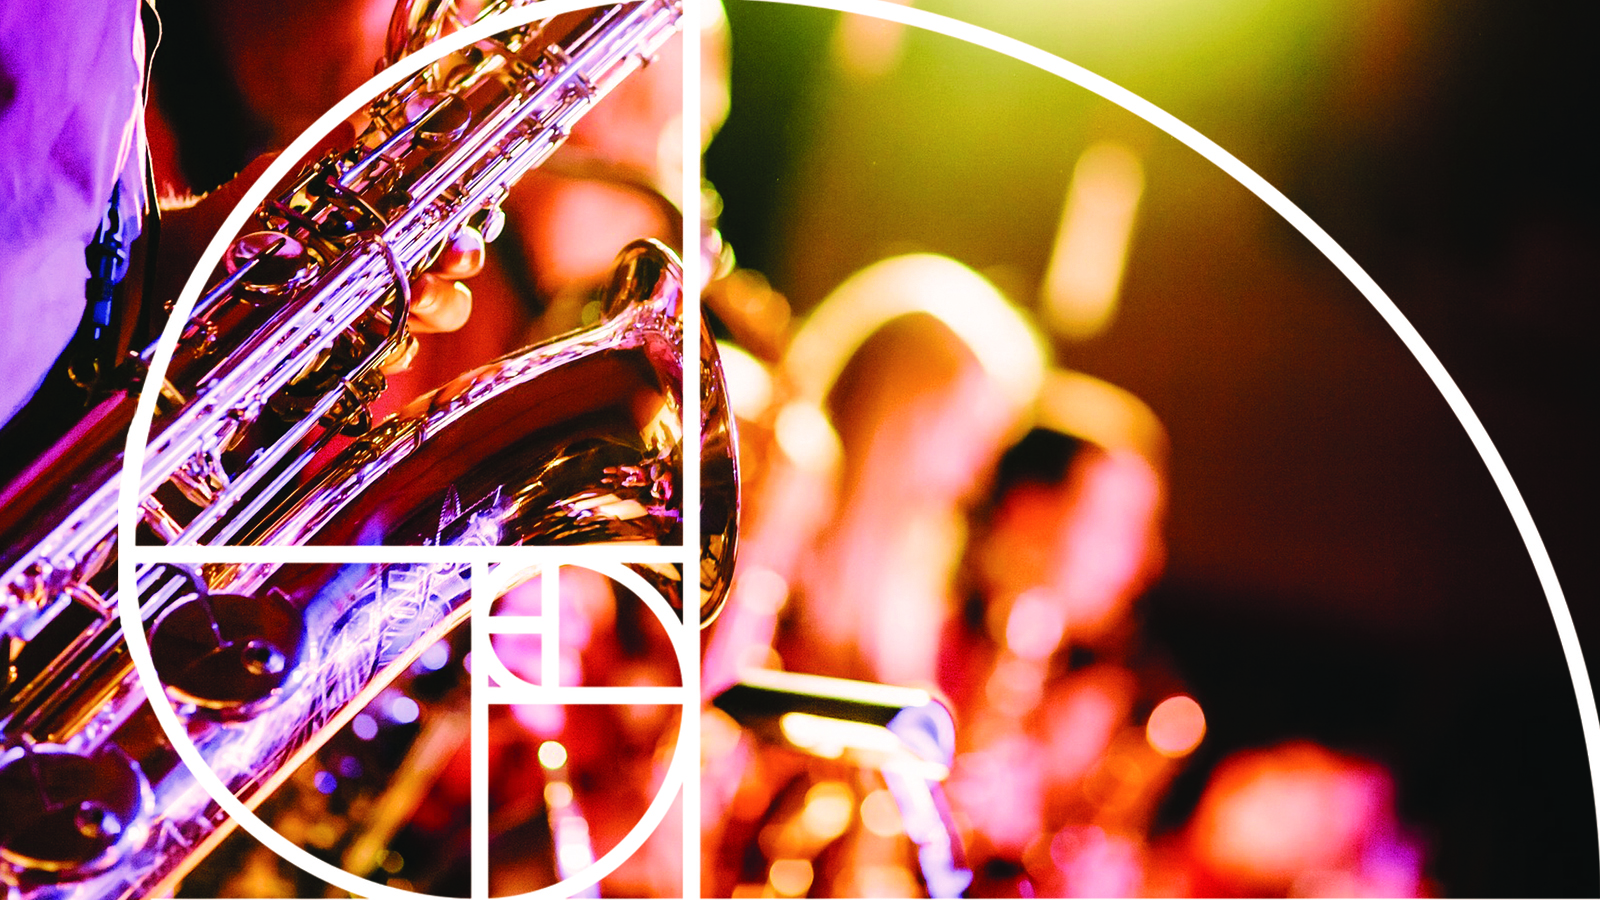 Image: Golden Ratio spiral over image of saxophone player